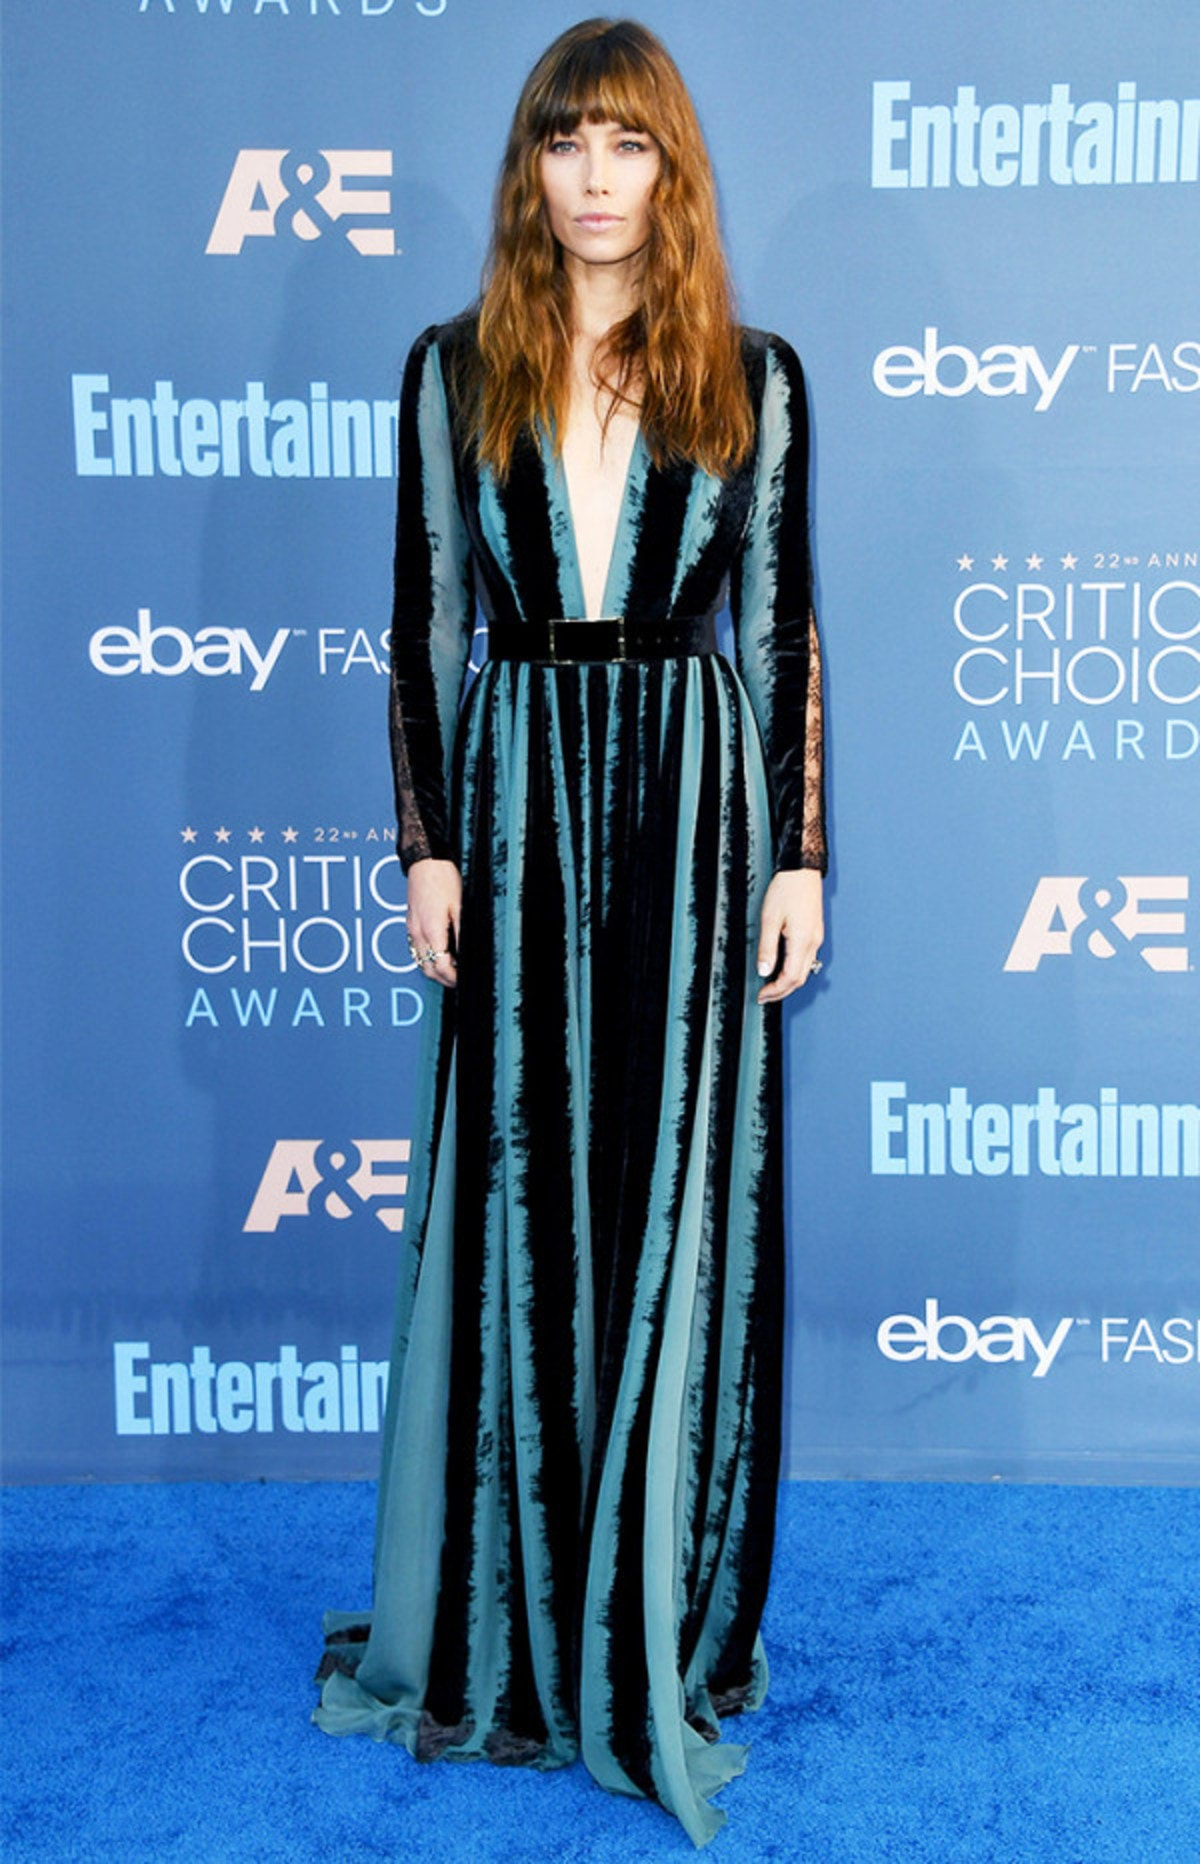 the-best-red-carpet-looks-from-the-critics-choice-awards-2075076.600x0c